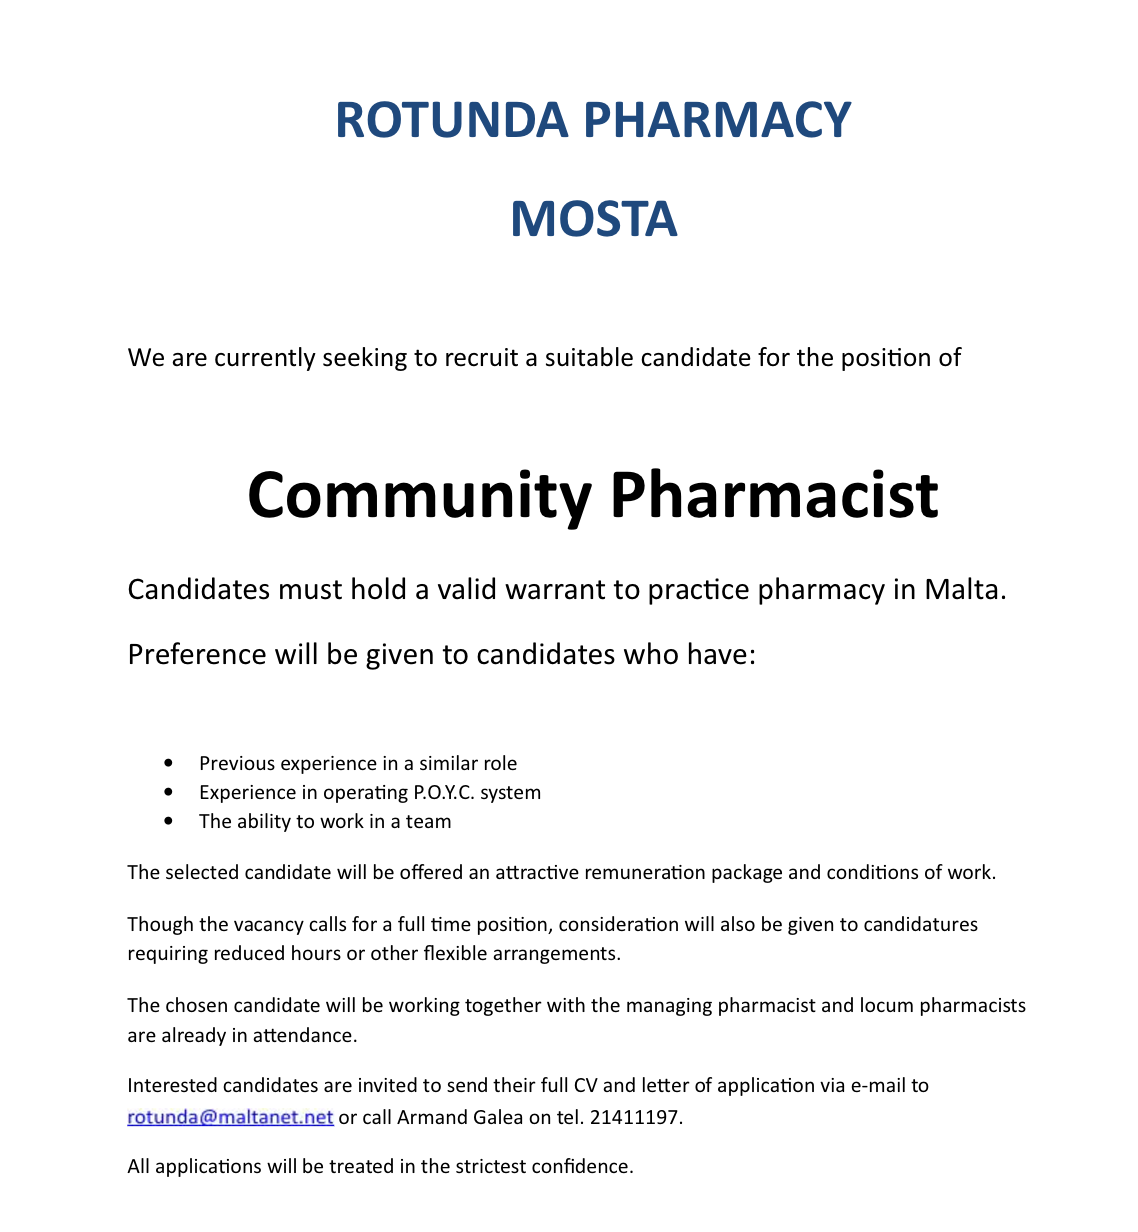 locum pharmacist covering letter Health care cover letter sample cover letter start-up tip: whatever aspect of health care you are interested in pursuing, be sure to include the essential elements that will capture a hiring manager's attention and motivate him or her to call you for an interview.